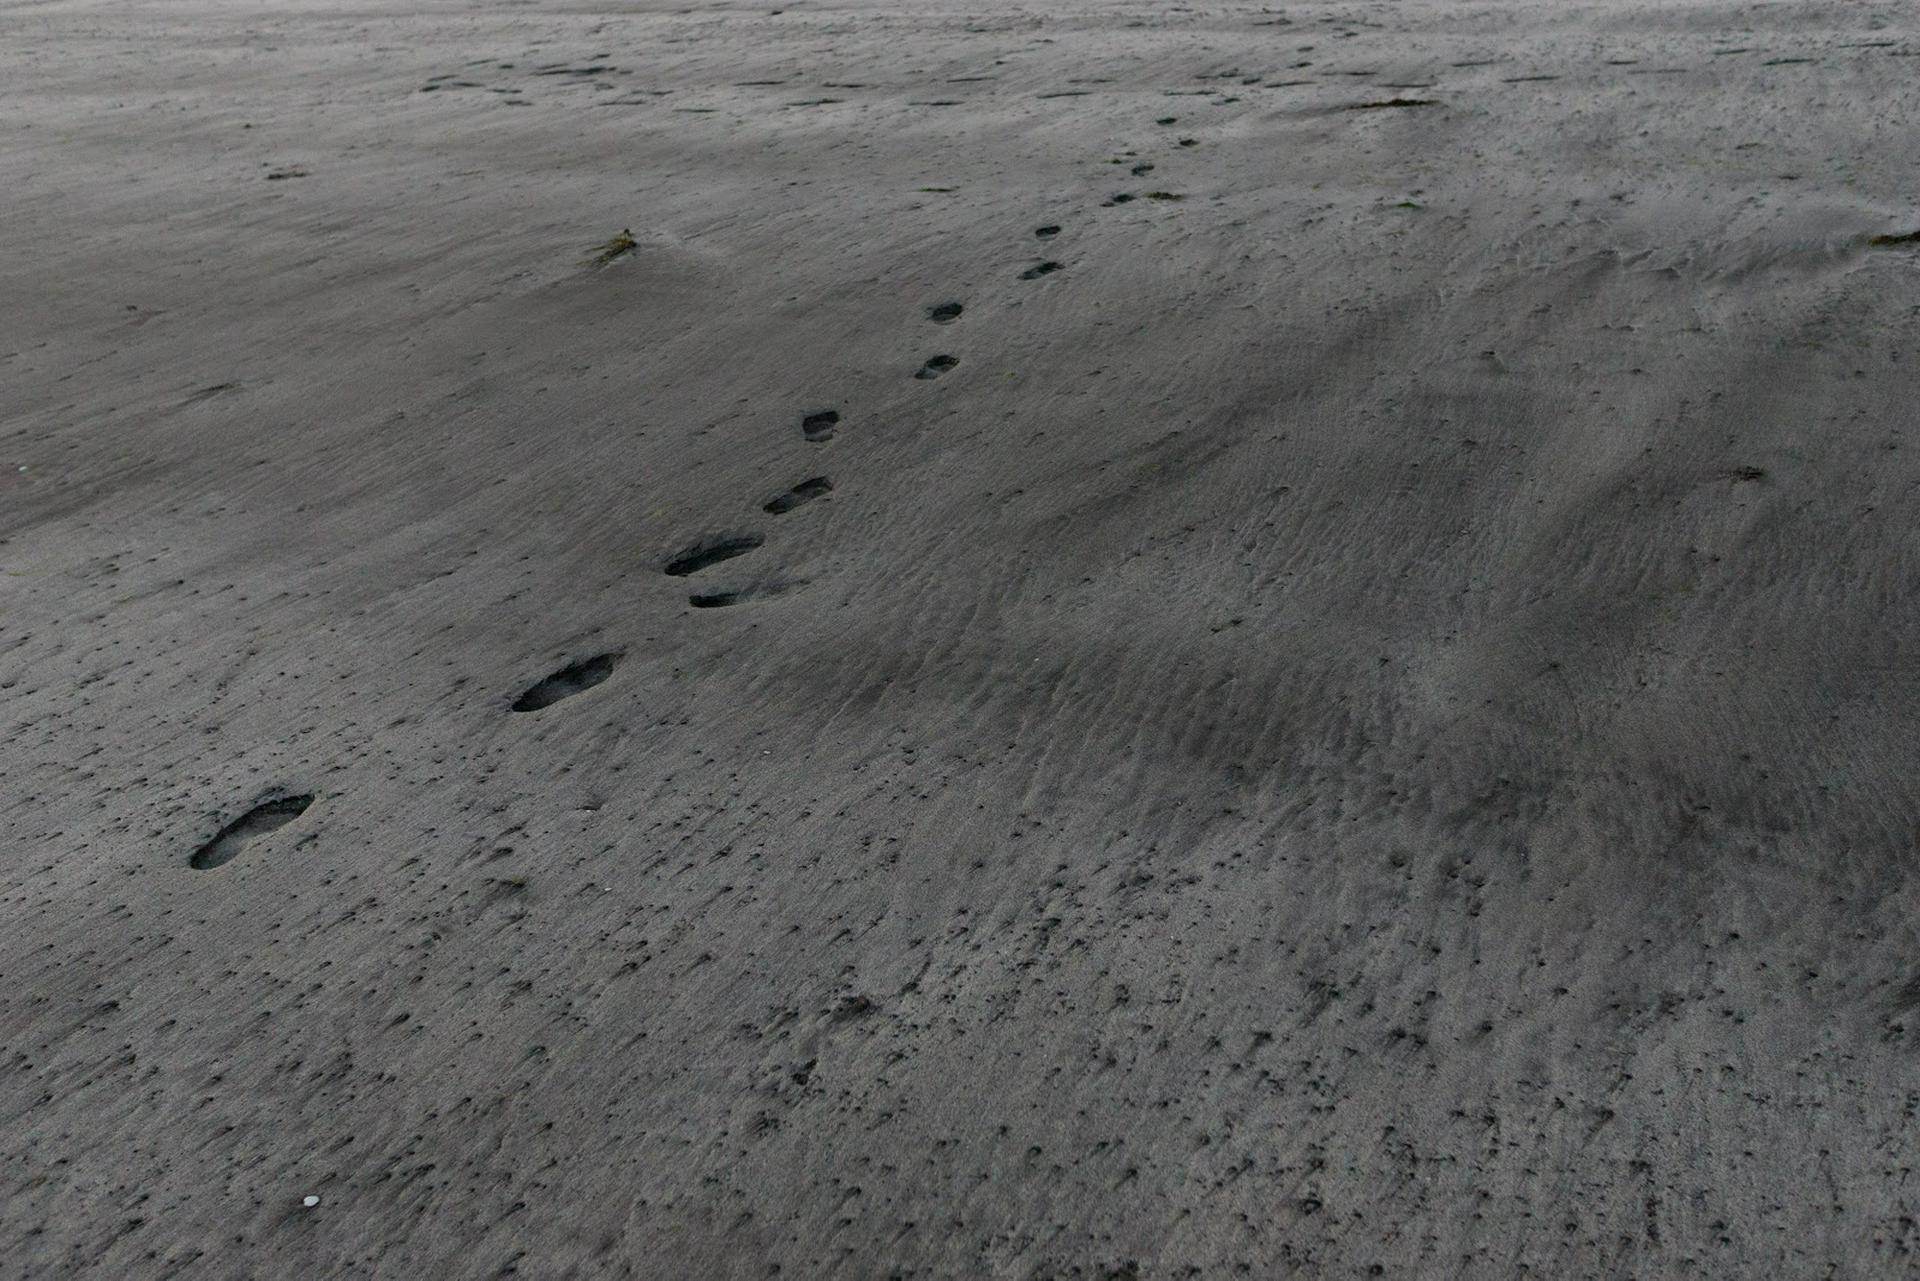 Glenbrittle footprints, Skye